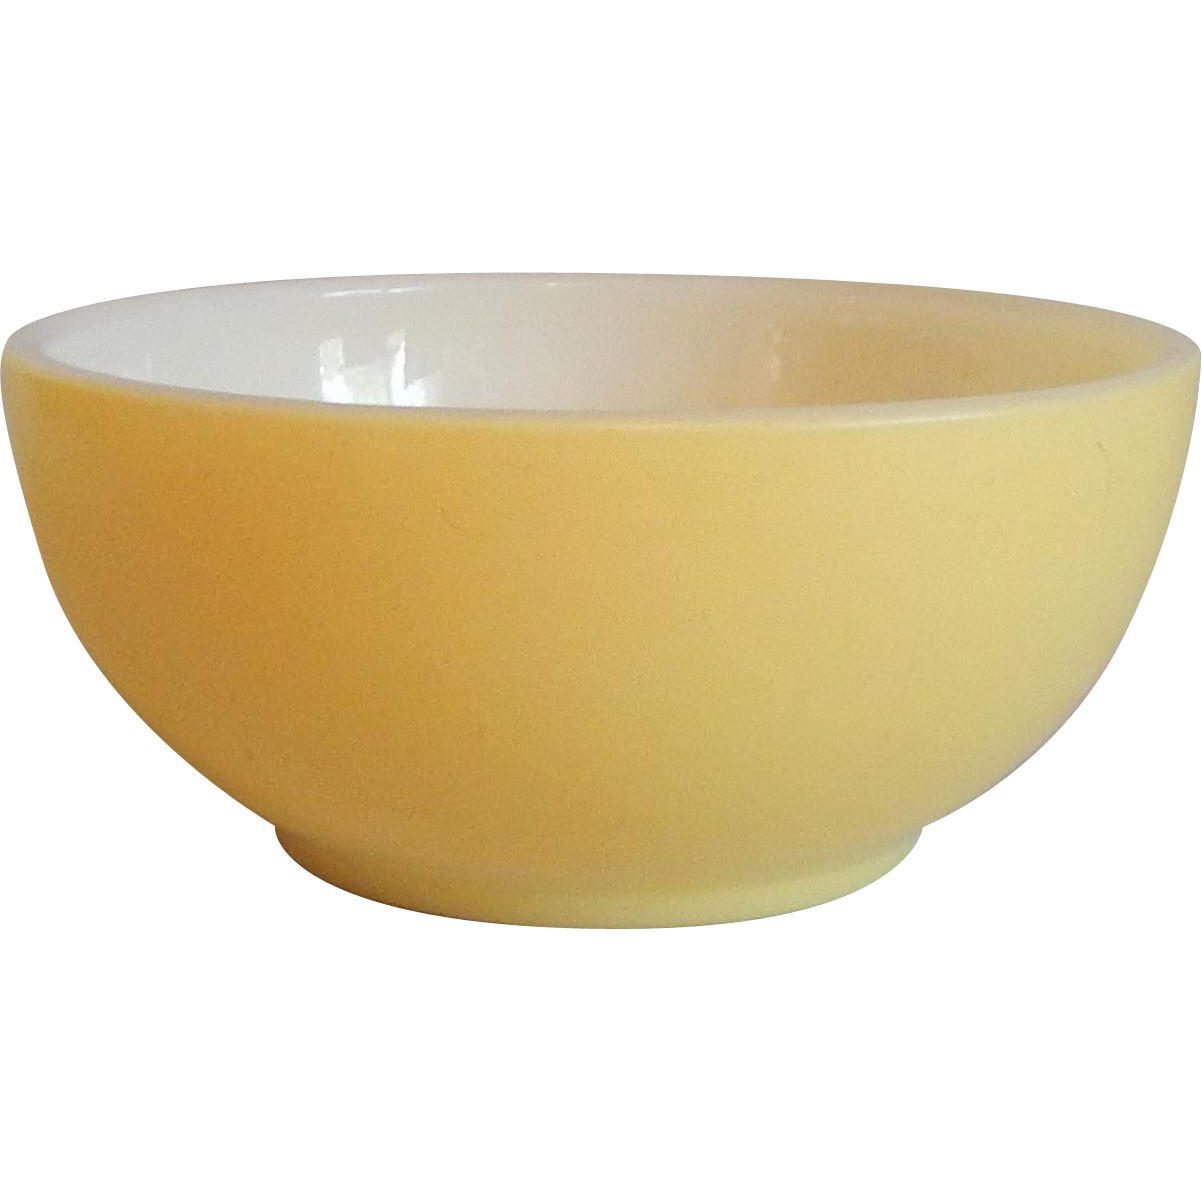 Fire King Yellow Cereal Bowl From Colemanscollectibles On